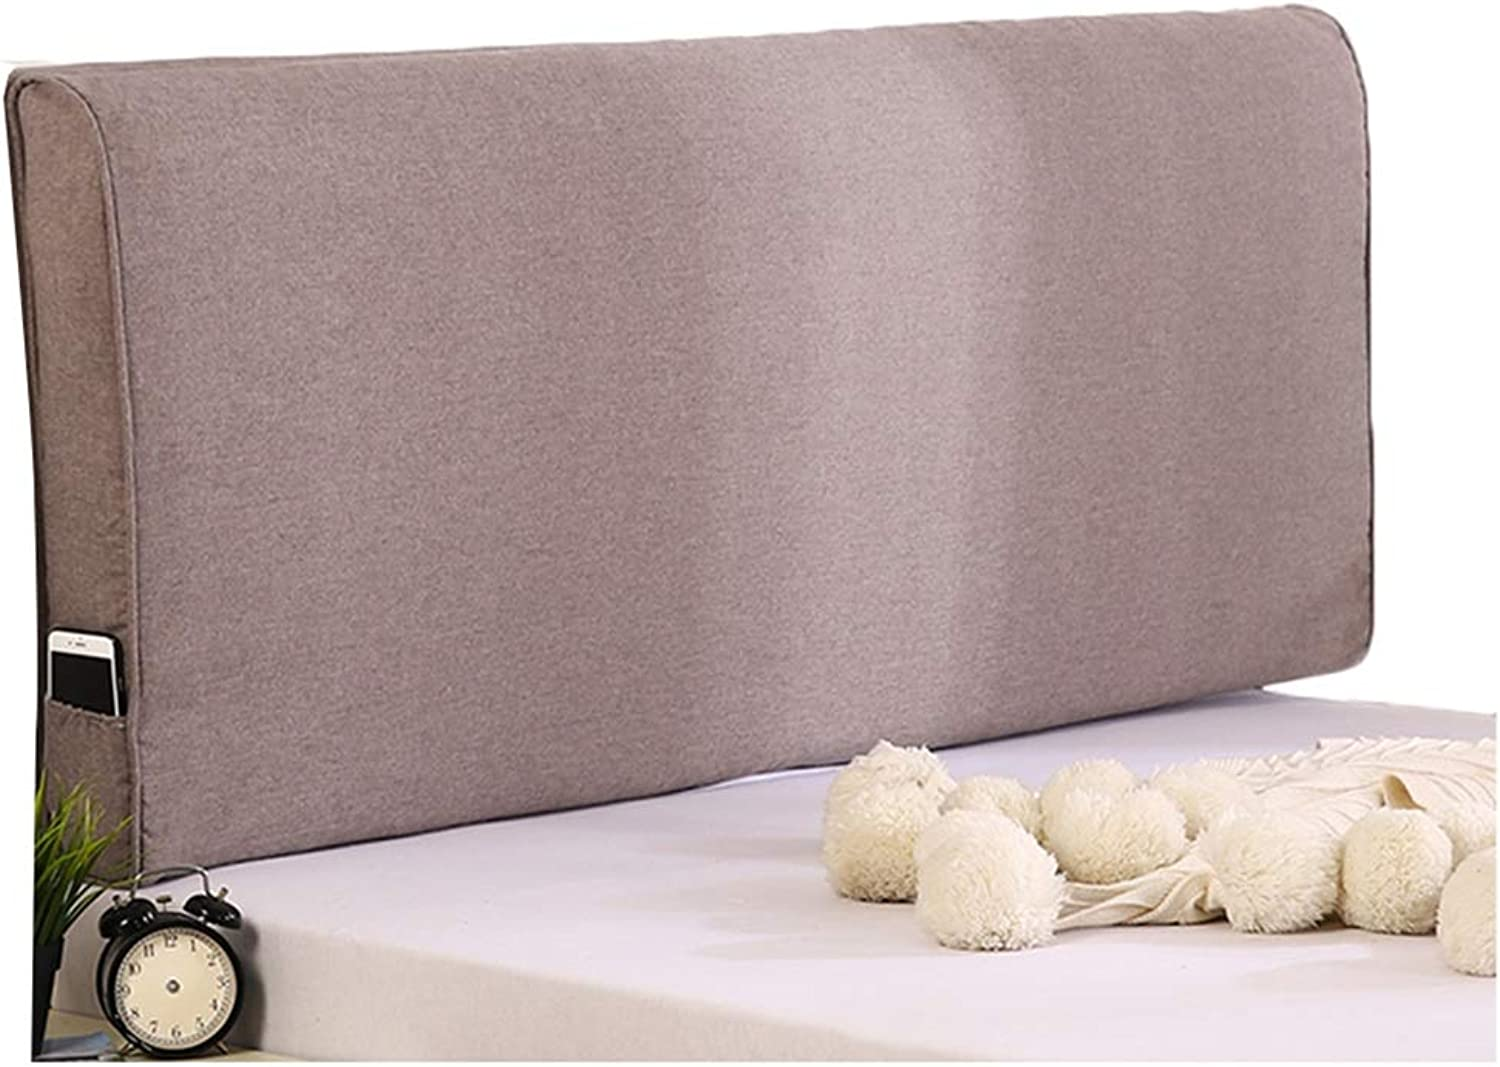 WENZHE Upholstered Fabric Upholstered Headboard Pillow Bedside Cushion Wedges Backrest Waist Pad Washable Soft Case Home Sponge Backrest, with Without Headboard, 3 colors